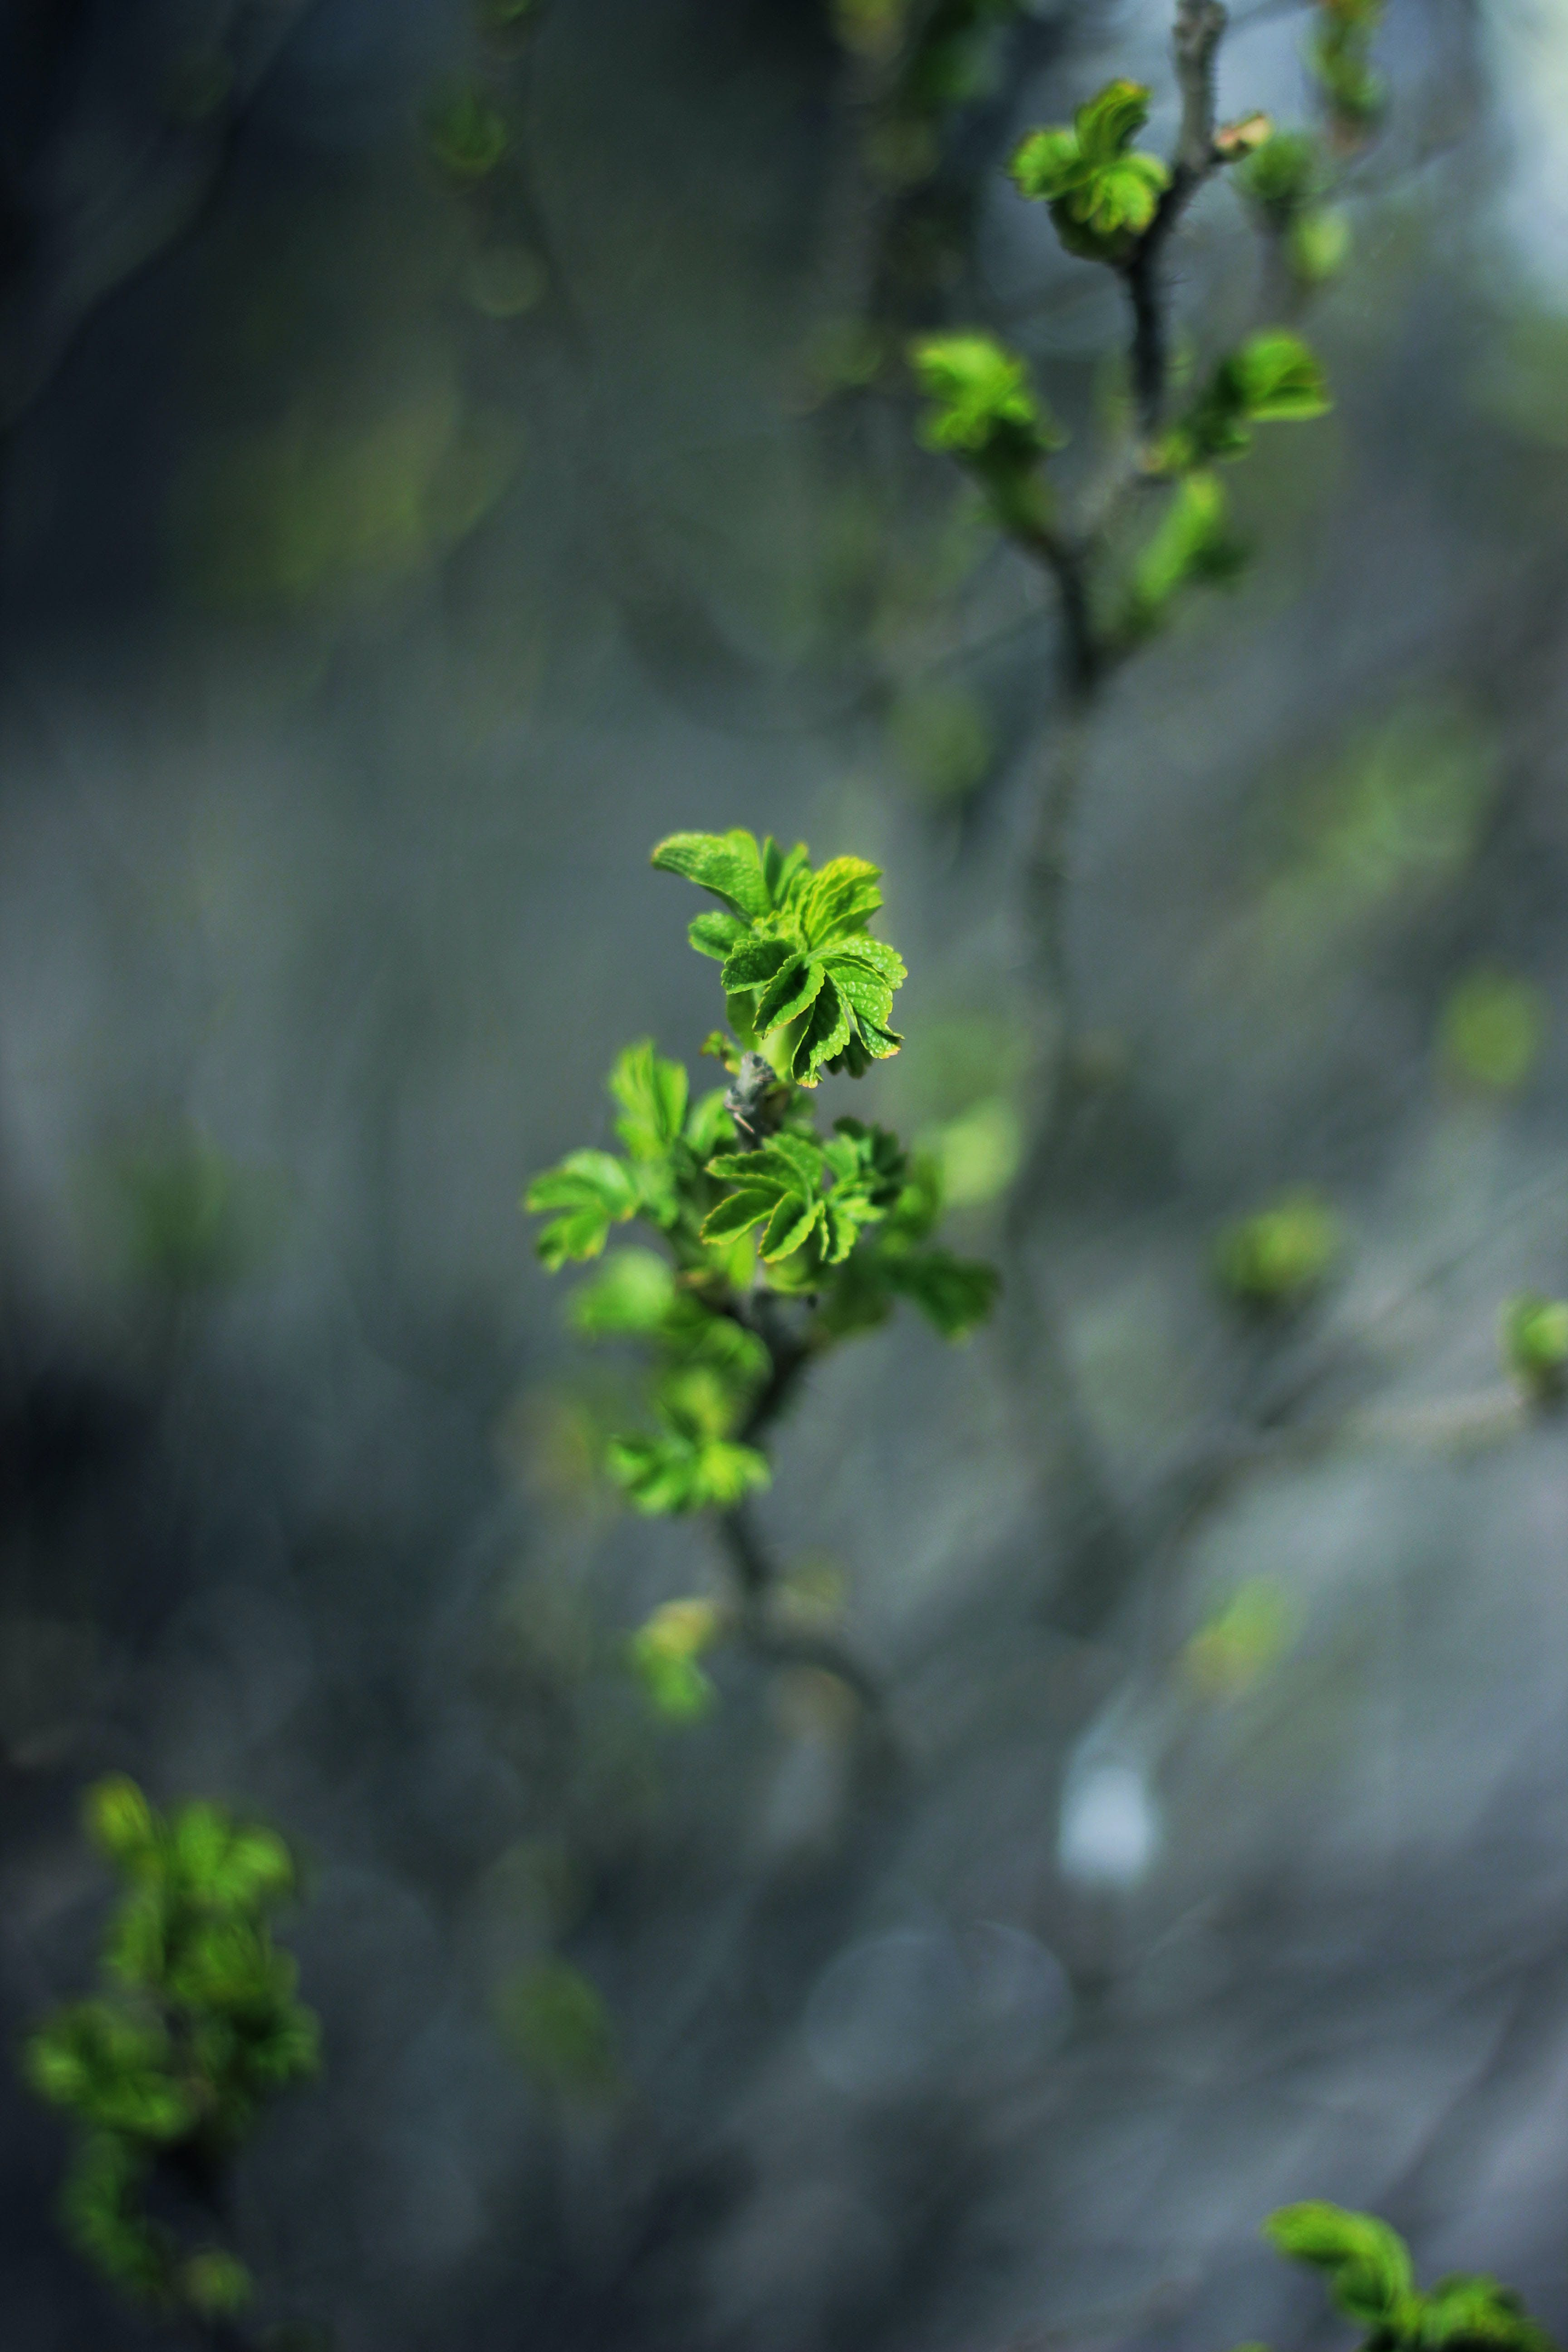 Free stock photo of nature, plant, leaves, green